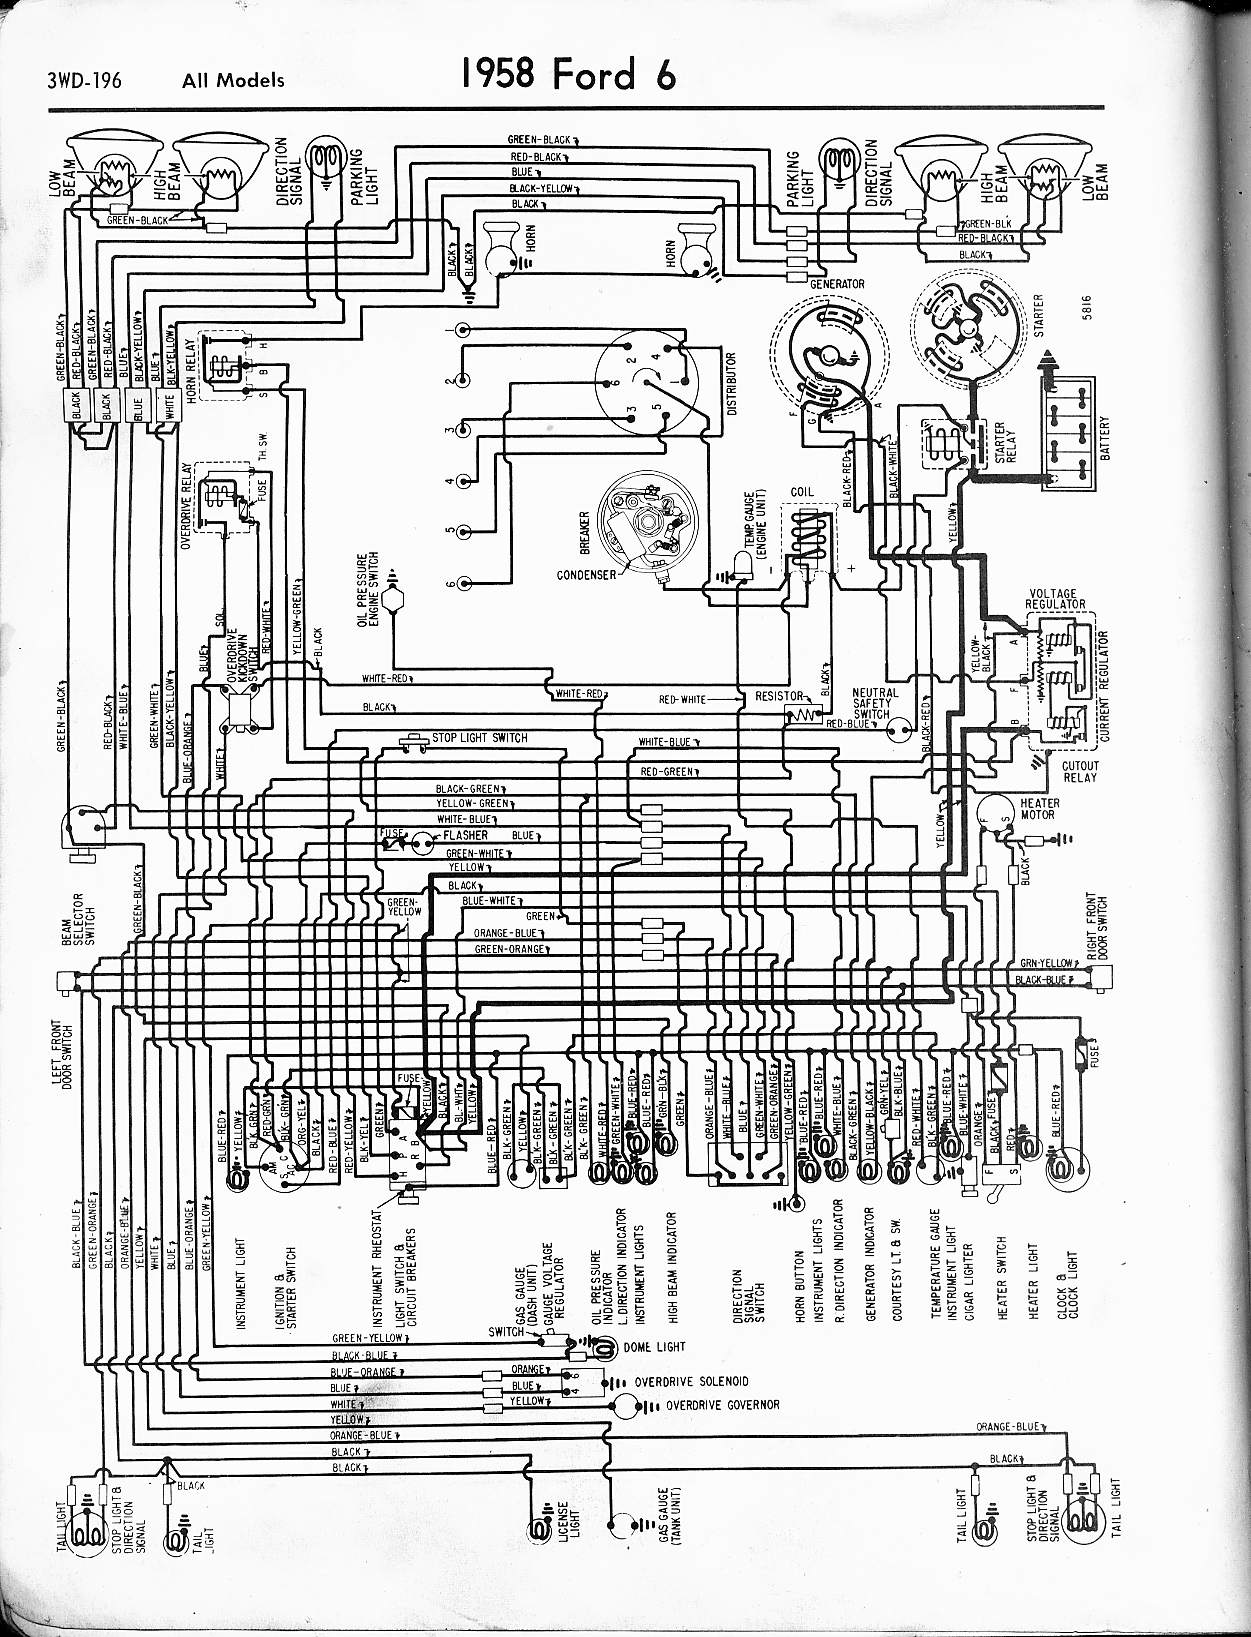 1960 Ford Wiring Diagram - Data Wiring Diagram Blog Ford Fairlane Wiring Diagram on ford aerostar wiring diagram, ford f-250 super duty wiring diagram, 1937 ford wiring diagram, ford 500 wiring diagram, ford f500 wiring diagram, ford fairlane rear suspension, 1963 ford wiring diagram, 1964 ford truck wiring diagram, ford fairlane fuel tank, ford truck wiring schematics, ford granada wiring diagram, ford econoline van wiring diagram, ford fairlane exhaust, ford fairlane radio, ford electrical wiring diagrams, ford fairlane specifications, ford fairlane body, ford thunderbird wiring diagram, 1965 ford truck wiring diagram, ford flex wiring diagram,